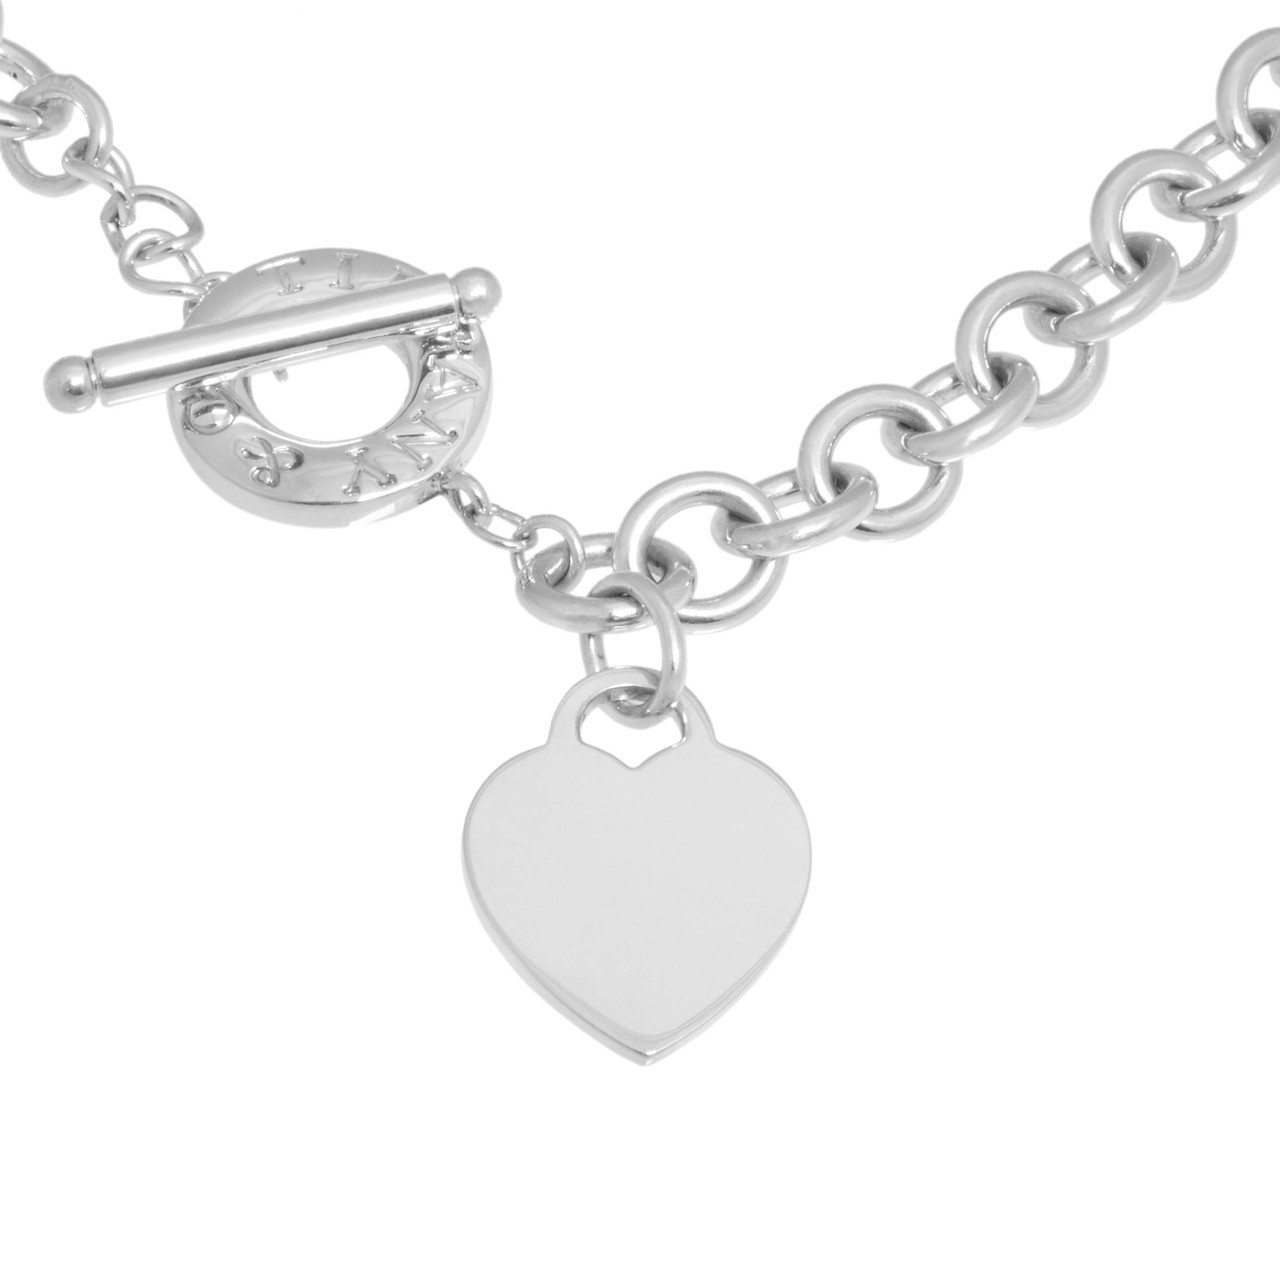 25010227ac5b54 Tiffany & Co. Sterling Silver Heart Toggle Necklace - modaselle